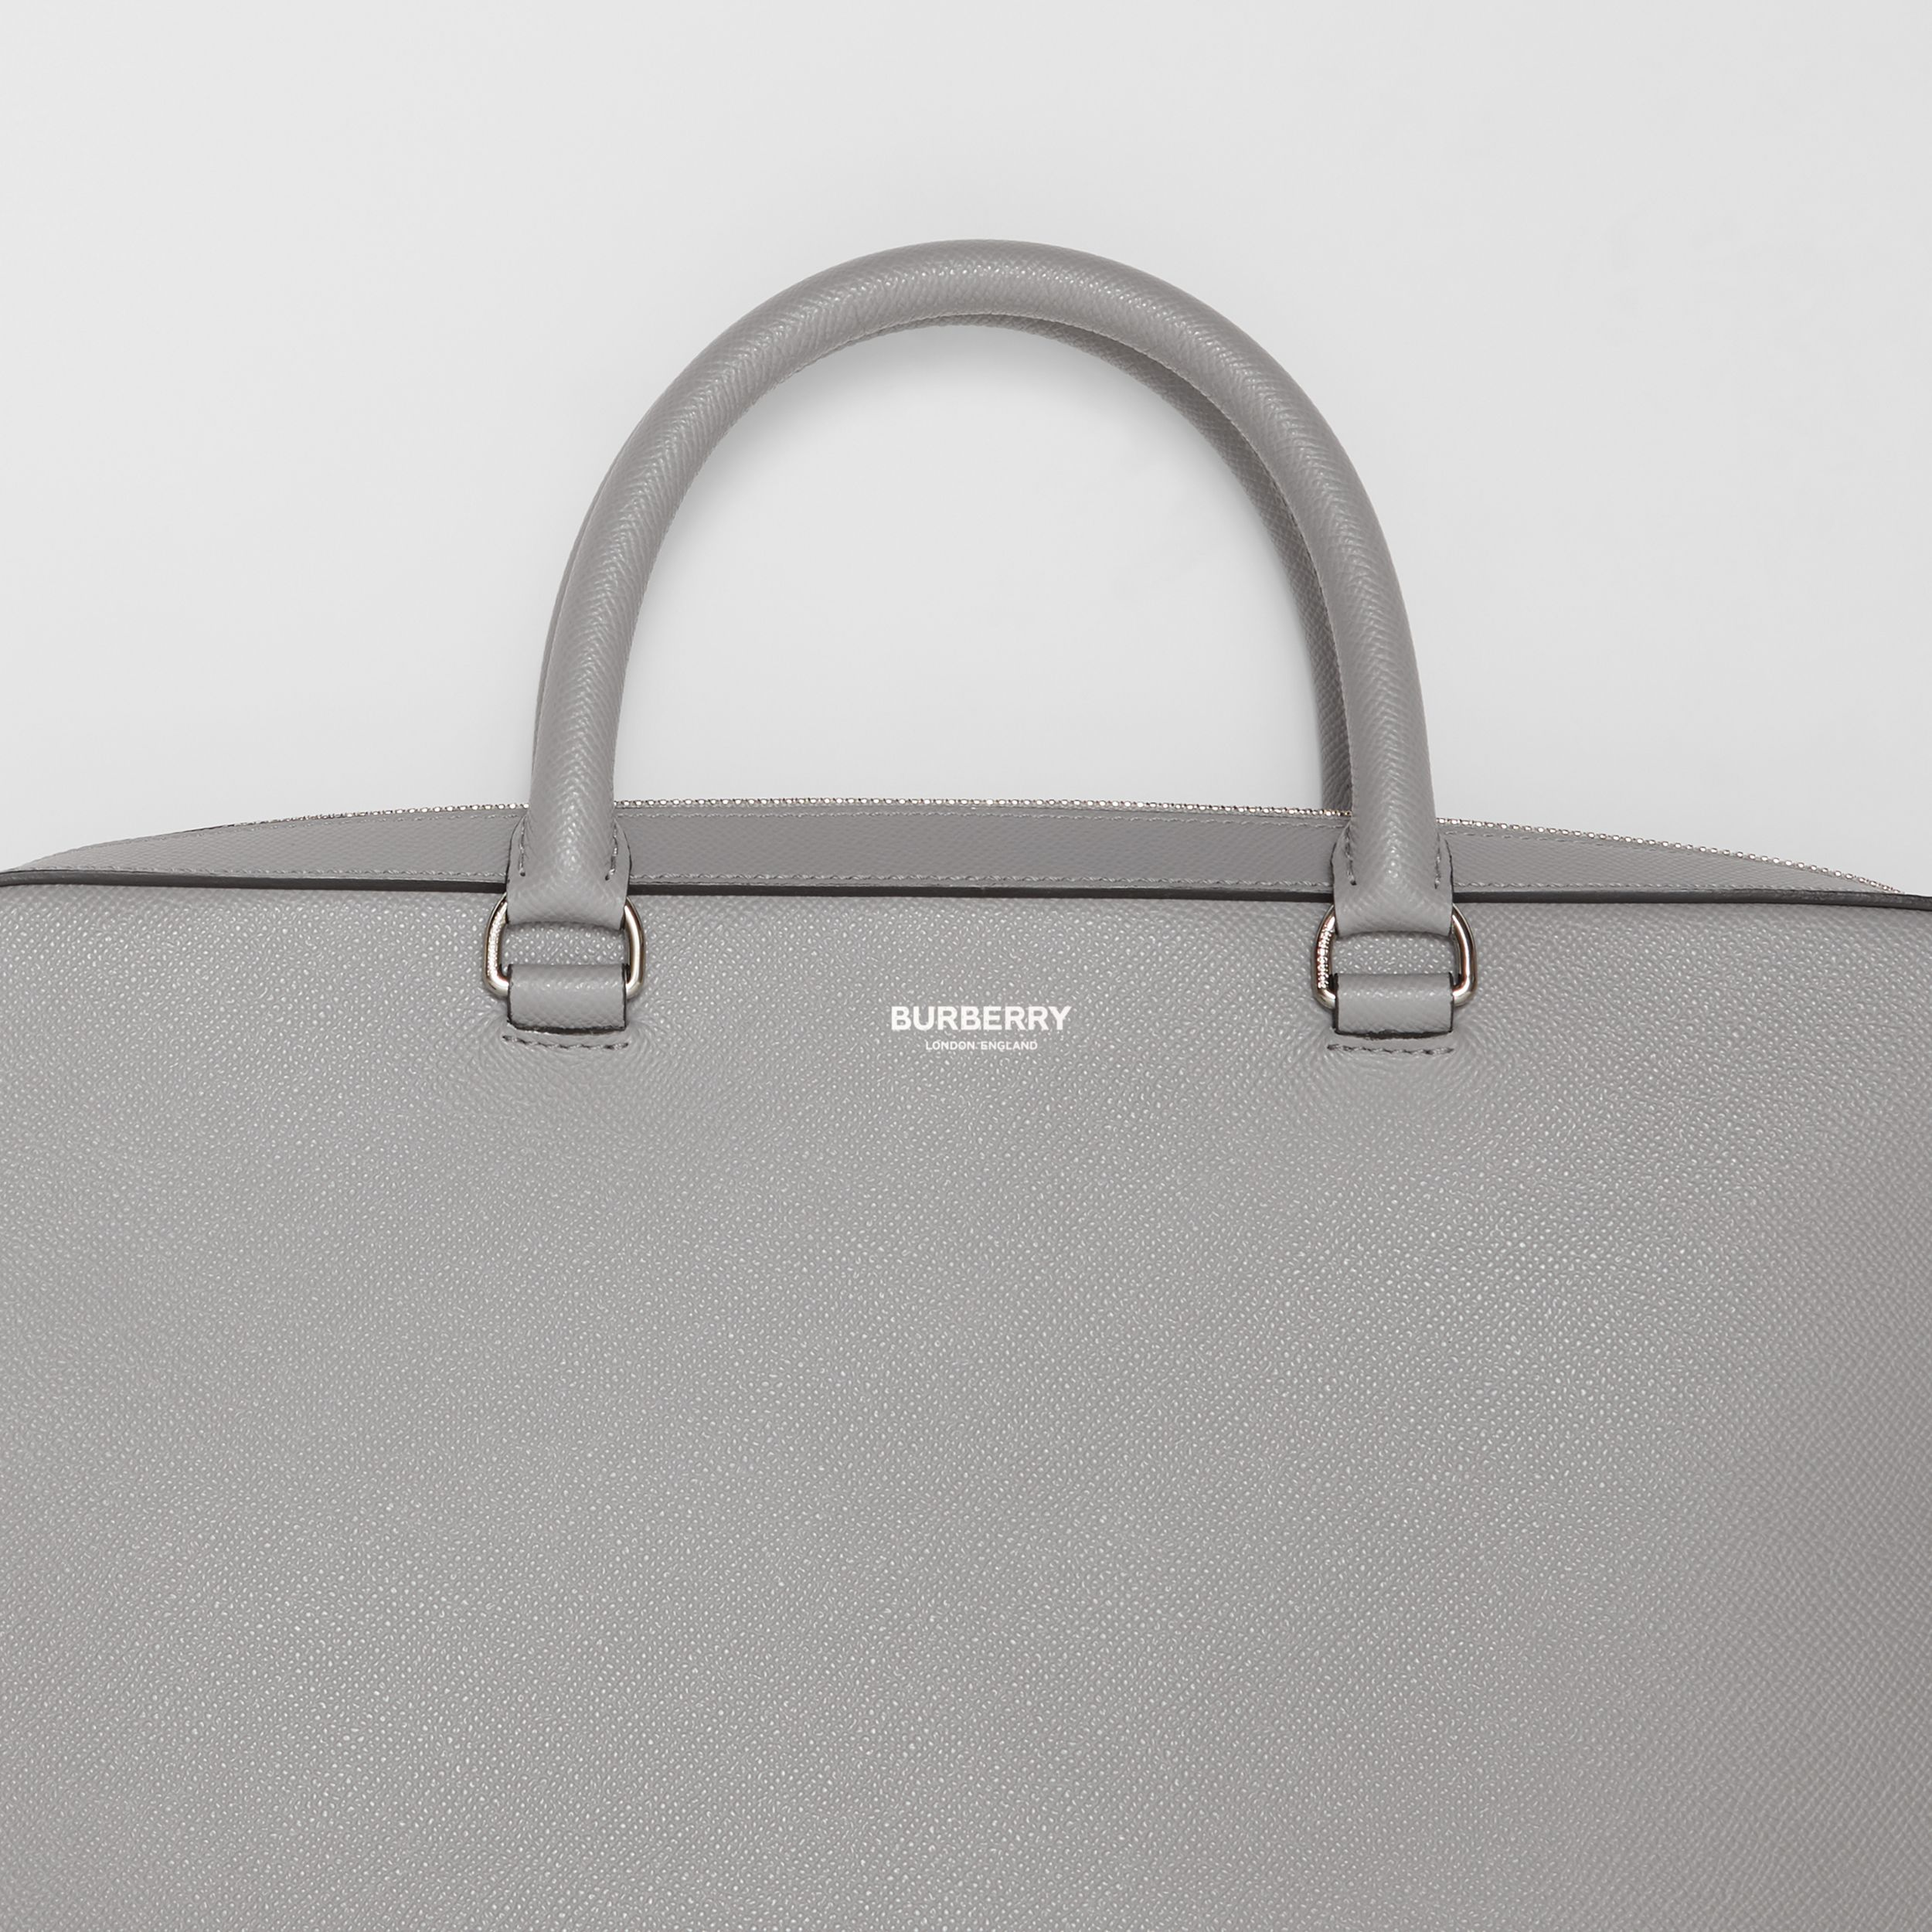 Grainy Leather Briefcase in Cloud Grey - Men | Burberry Canada - 2